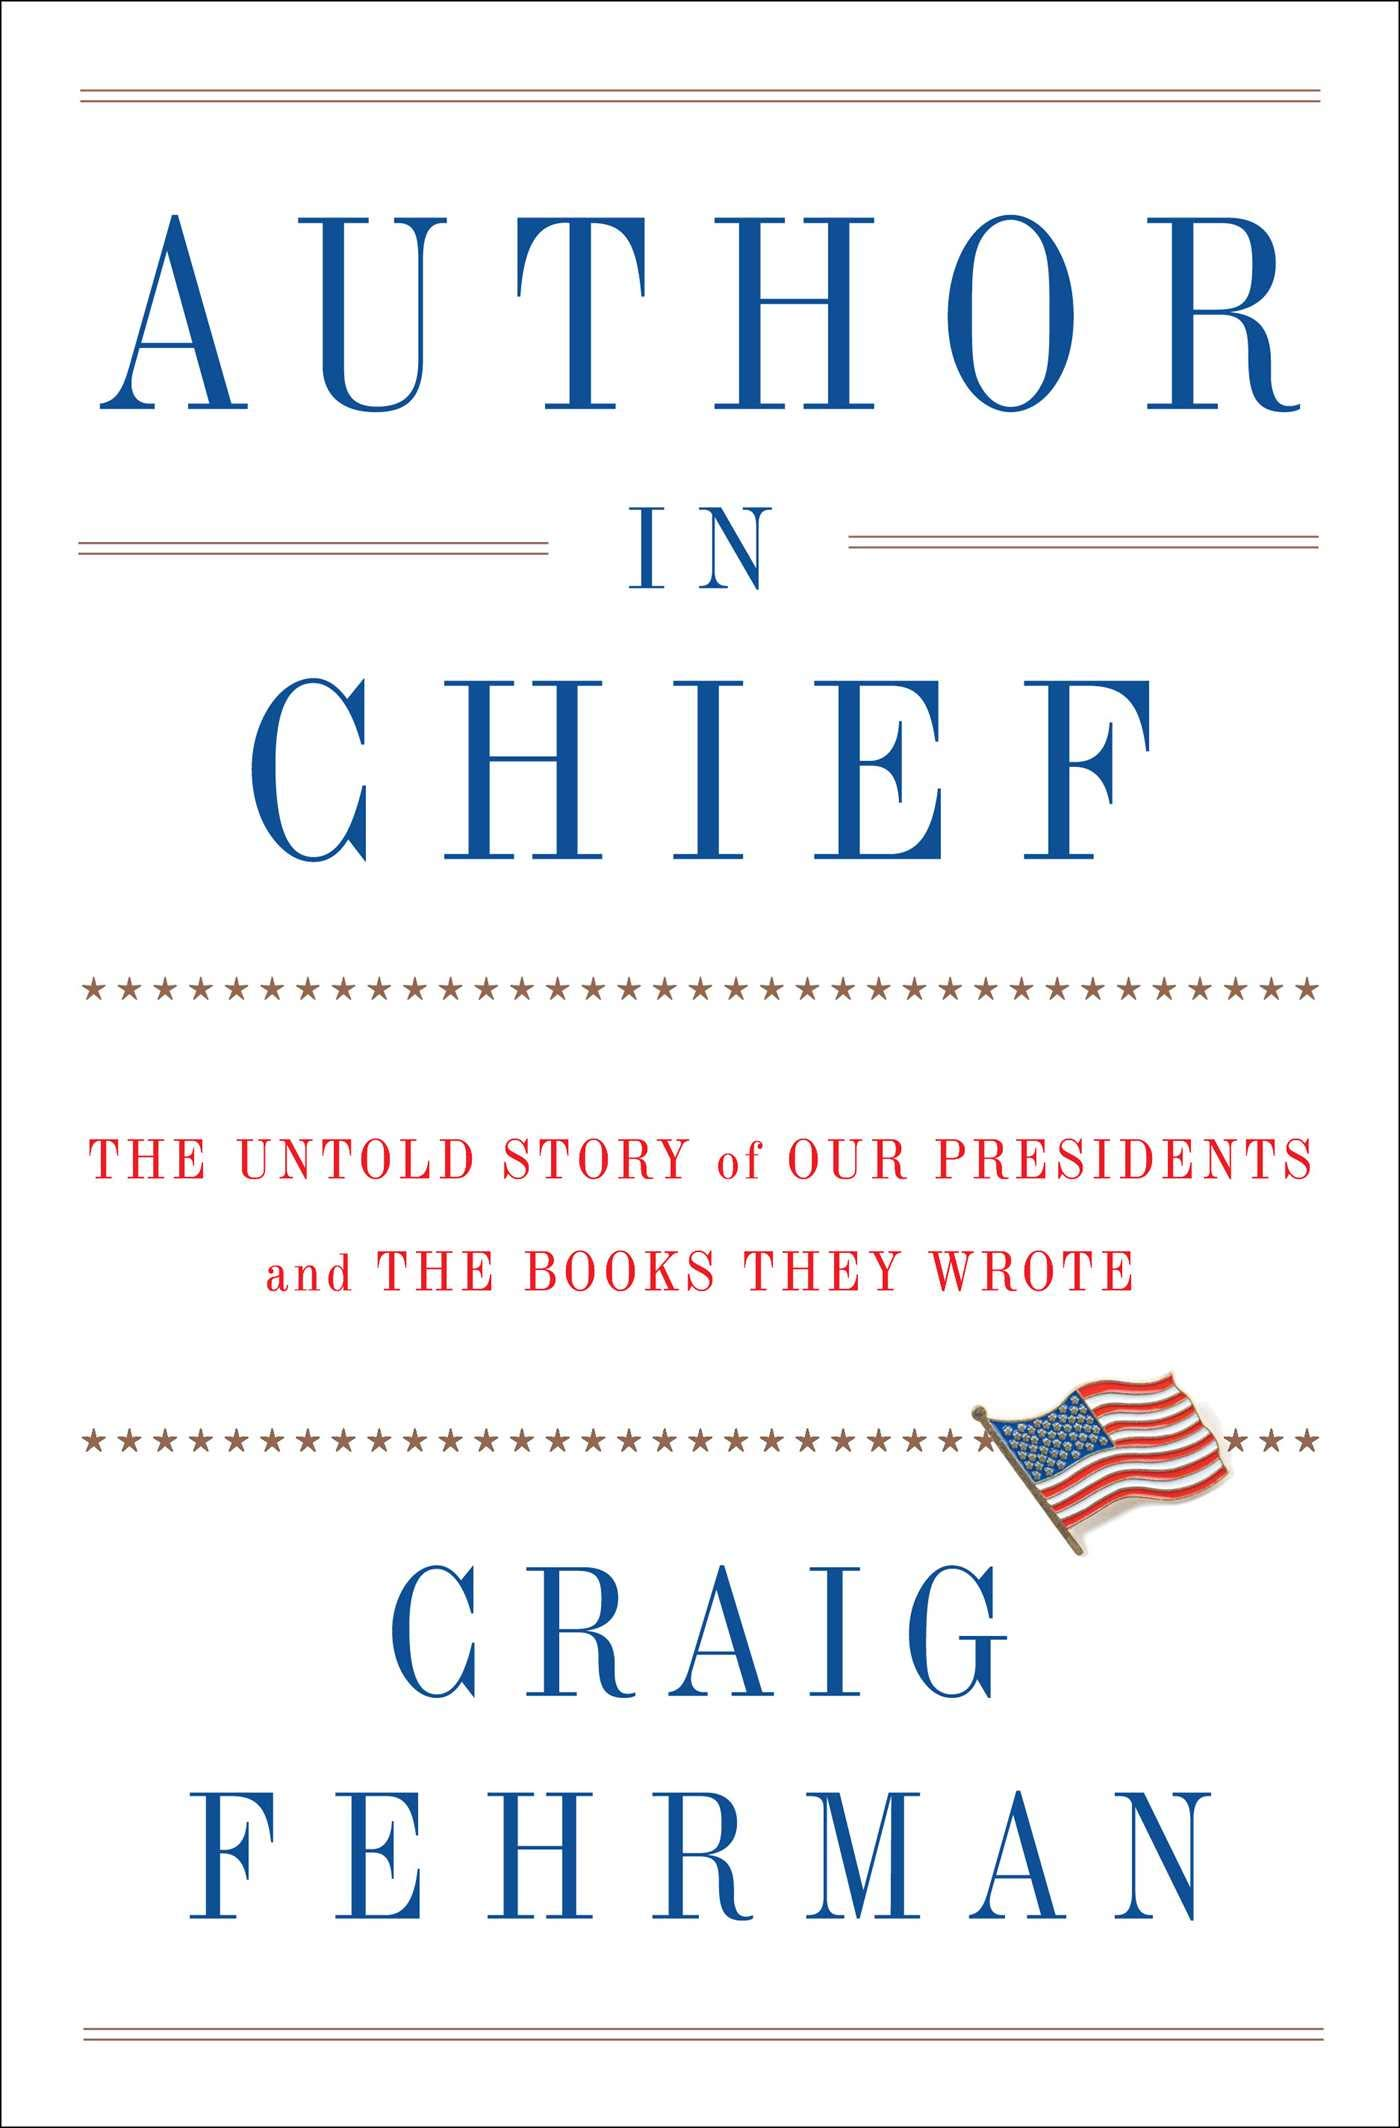 Author in Chief